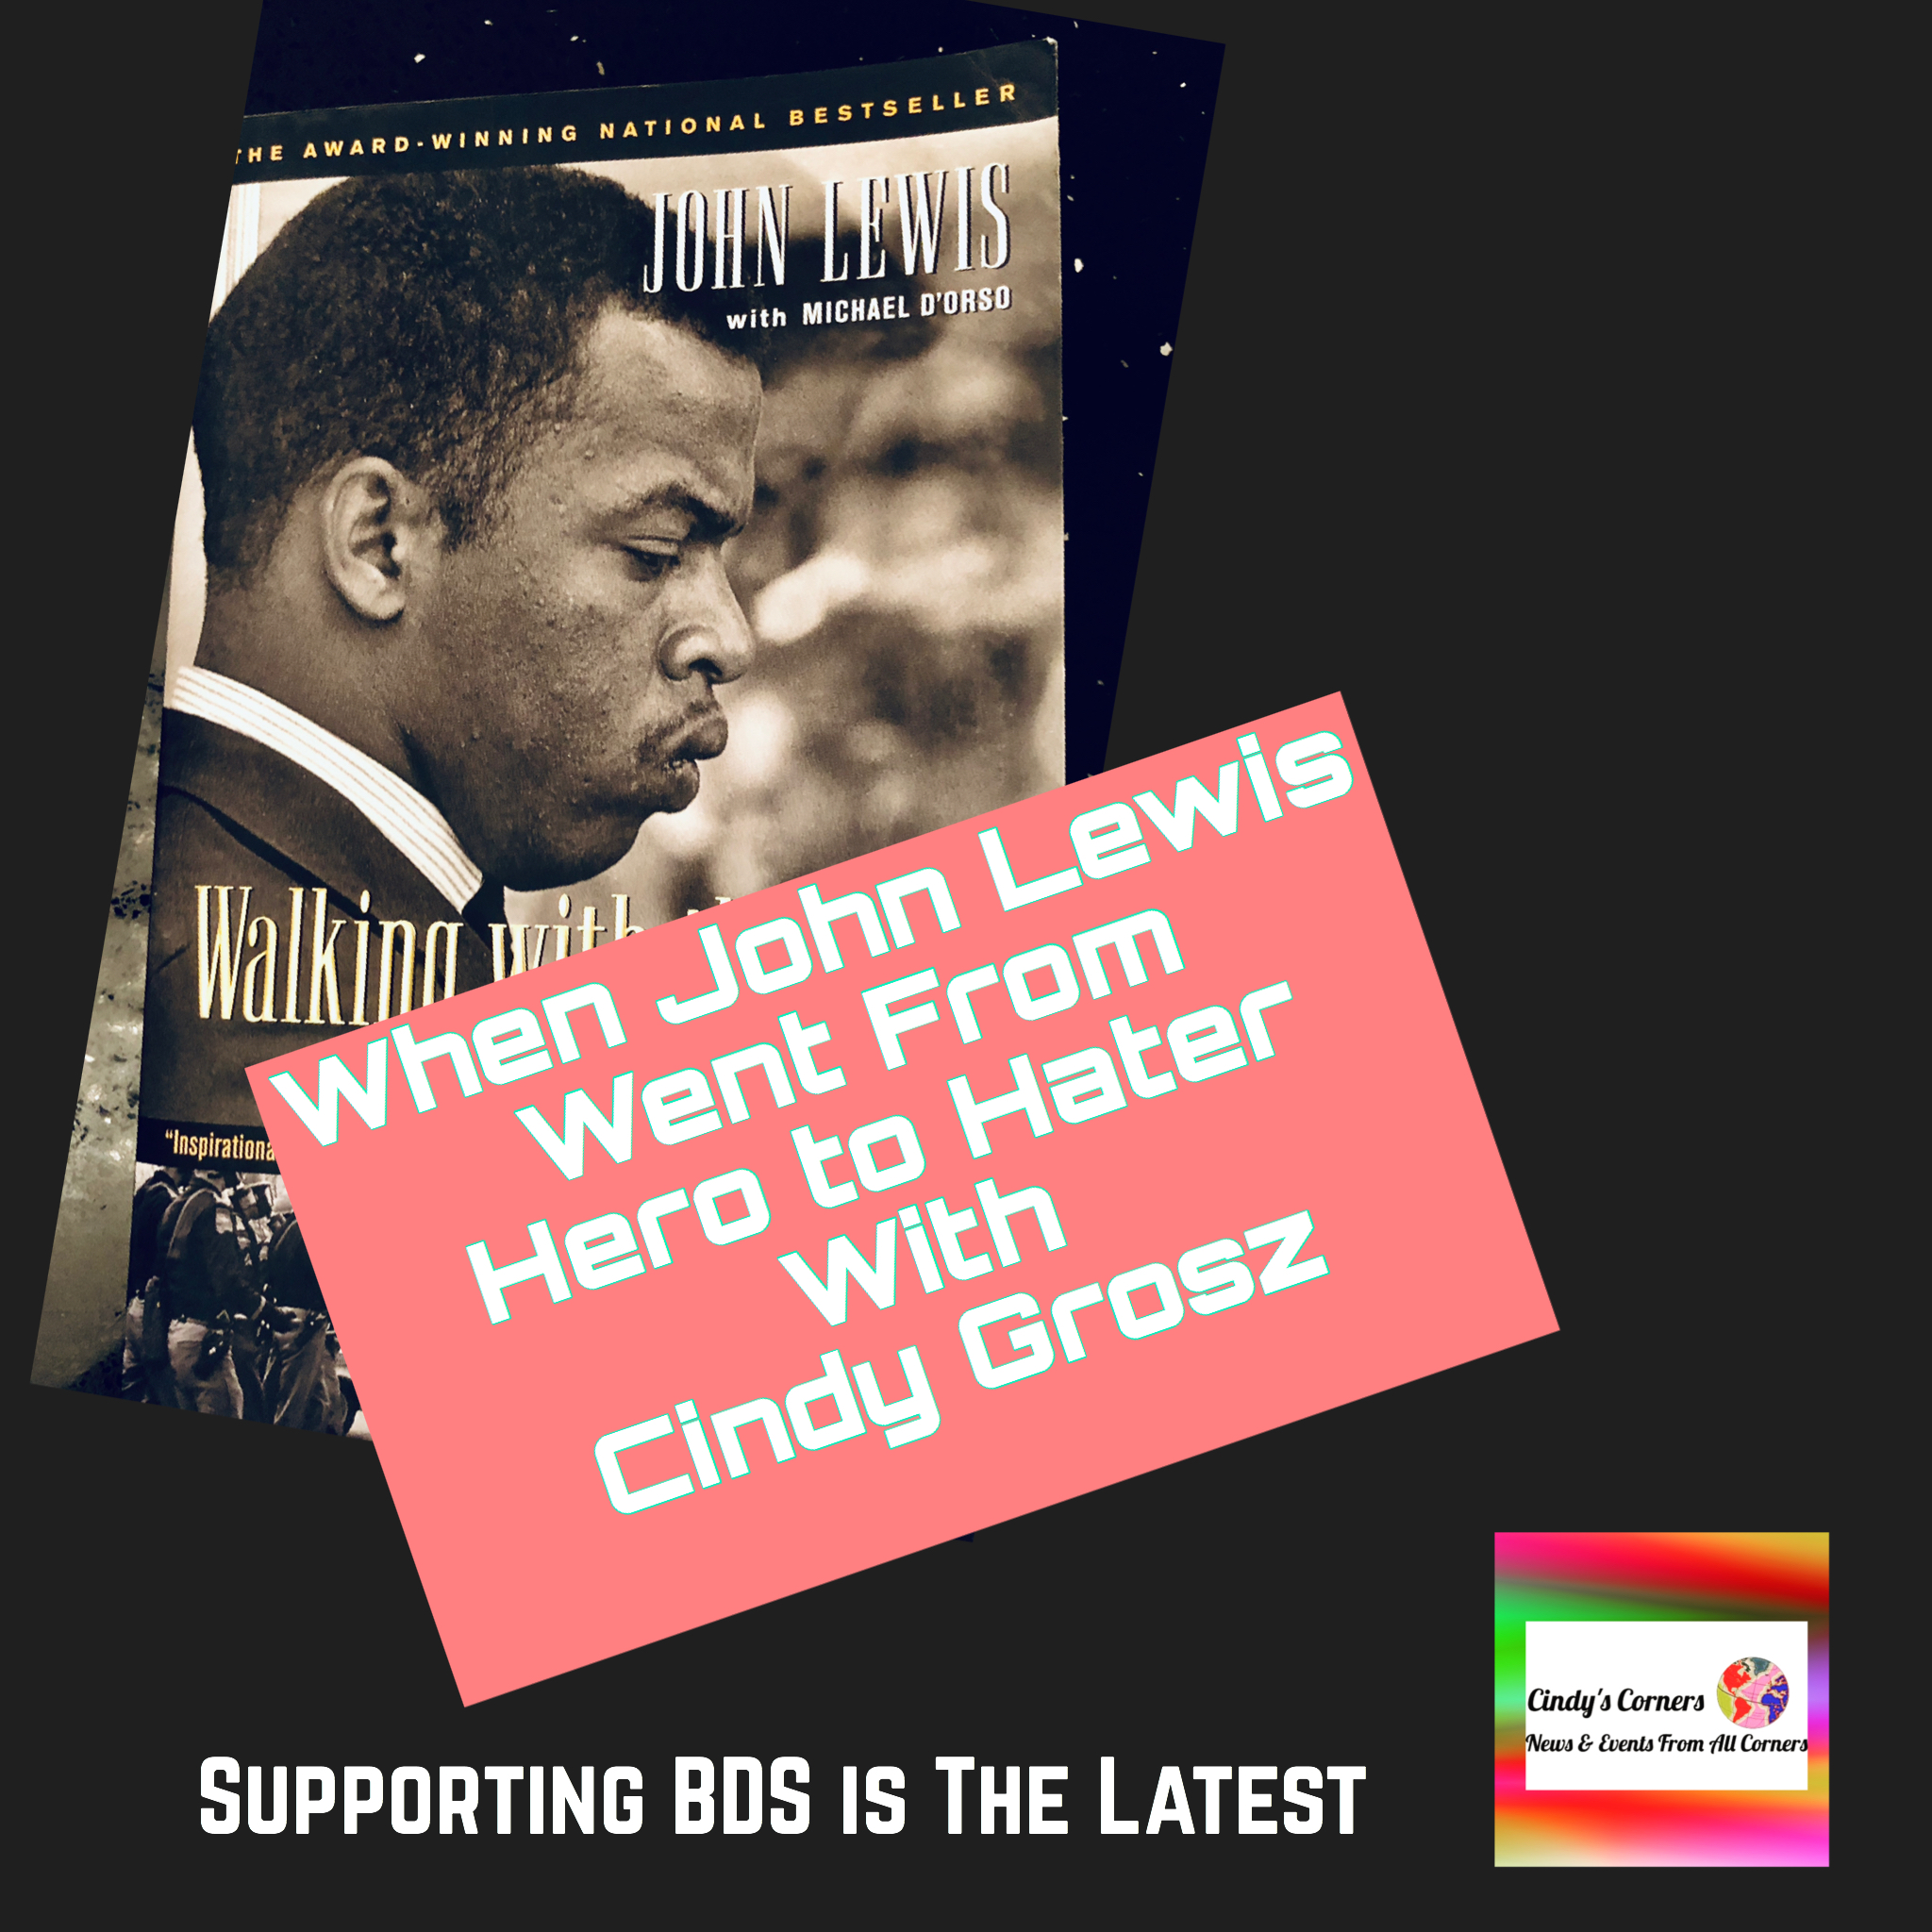 From Hero to Hater — John Lewis's Support of BDS with Cindy Grosz